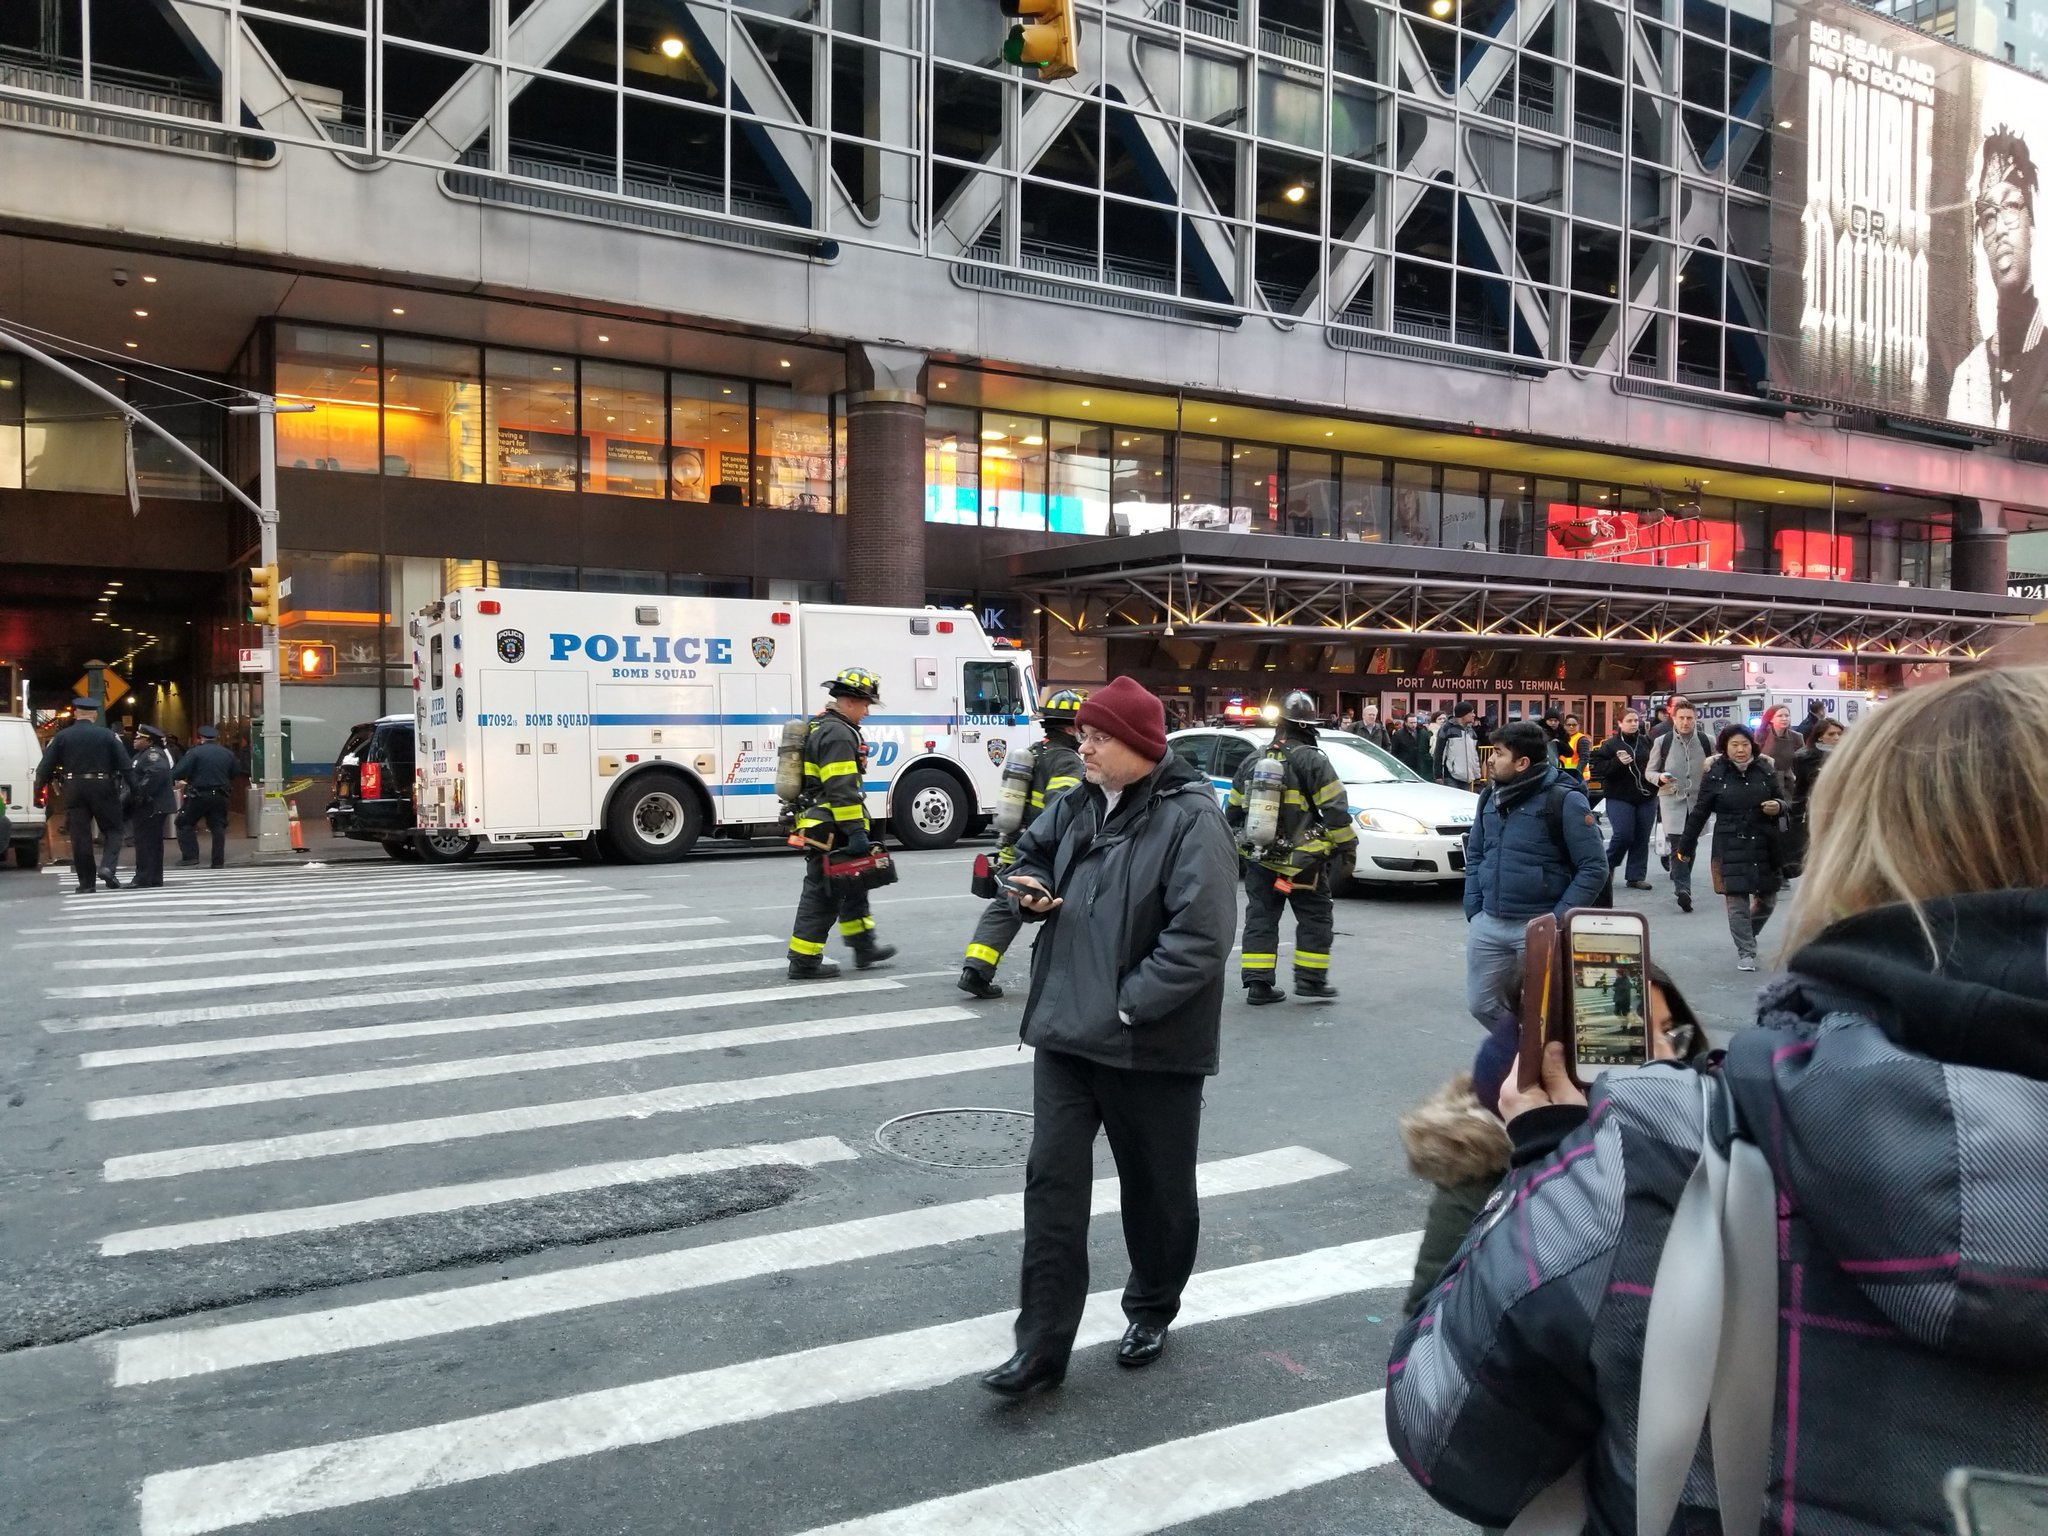 <div class='meta'><div class='origin-logo' data-origin='WABC'></div><span class='caption-text' data-credit='Bill Sweet via Twitter'>Photos from the scene of a pipe bomb explosion at the Port Authority Bus Terminal in Manhattan, New York City.</span></div>